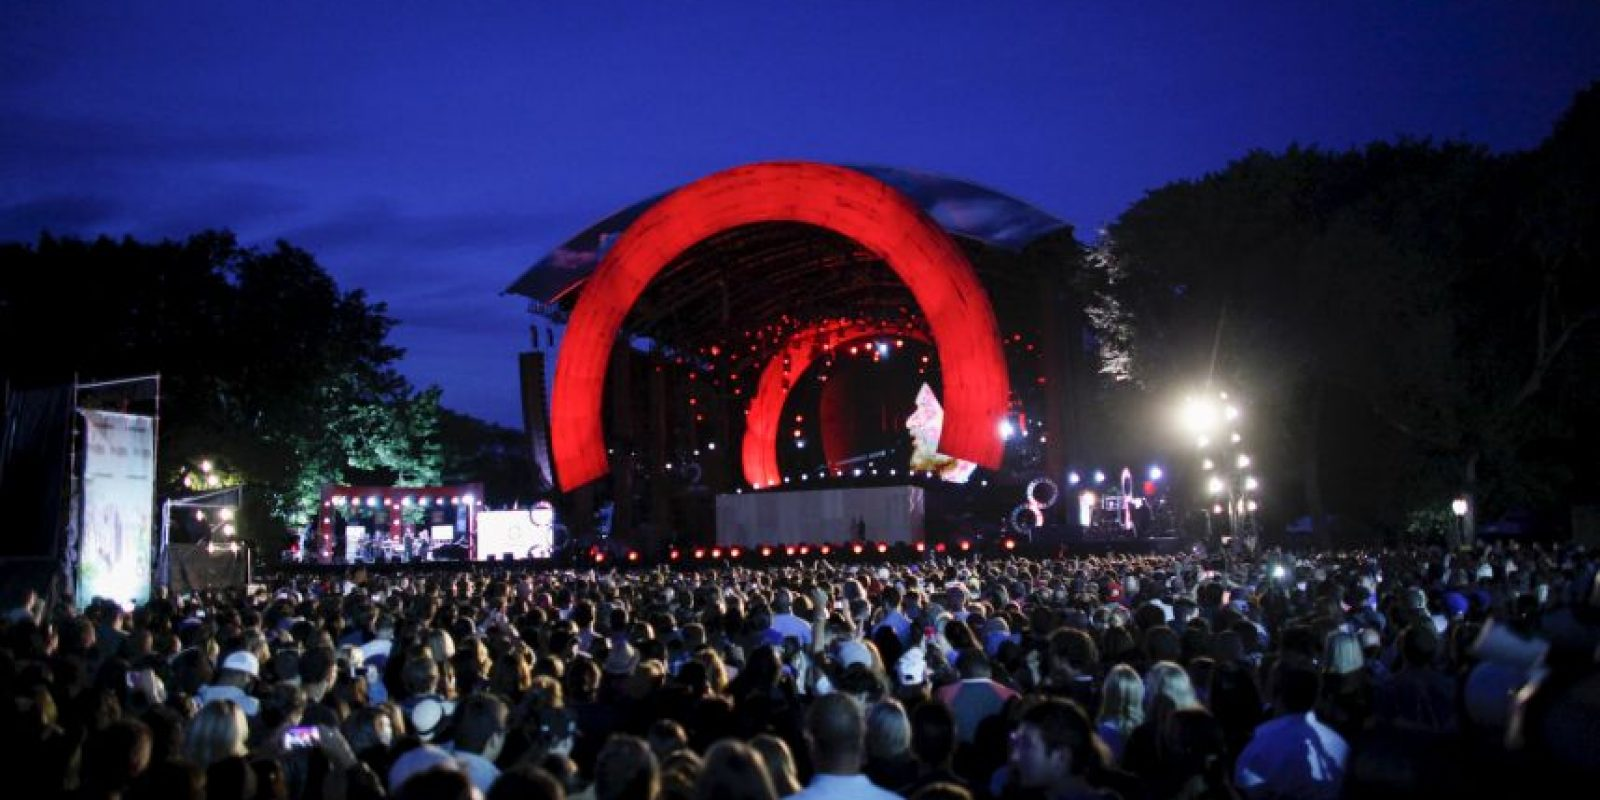 El festival Global Citizen se llevó a cabo en Central Park de Nueva York. Foto: Getty Images